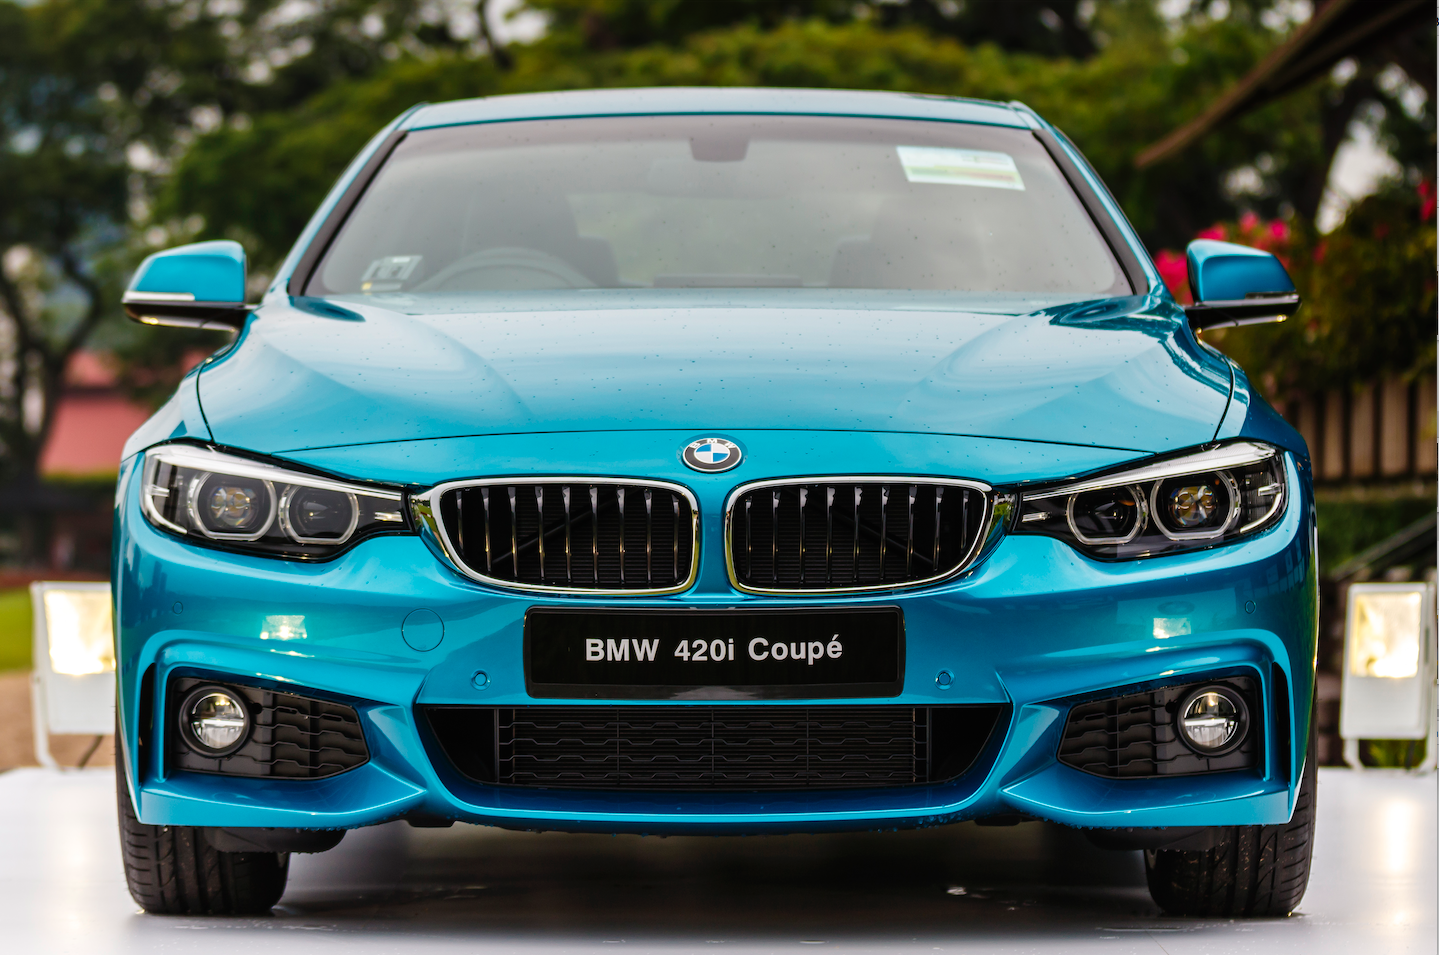 The BMW 420i coupe on display